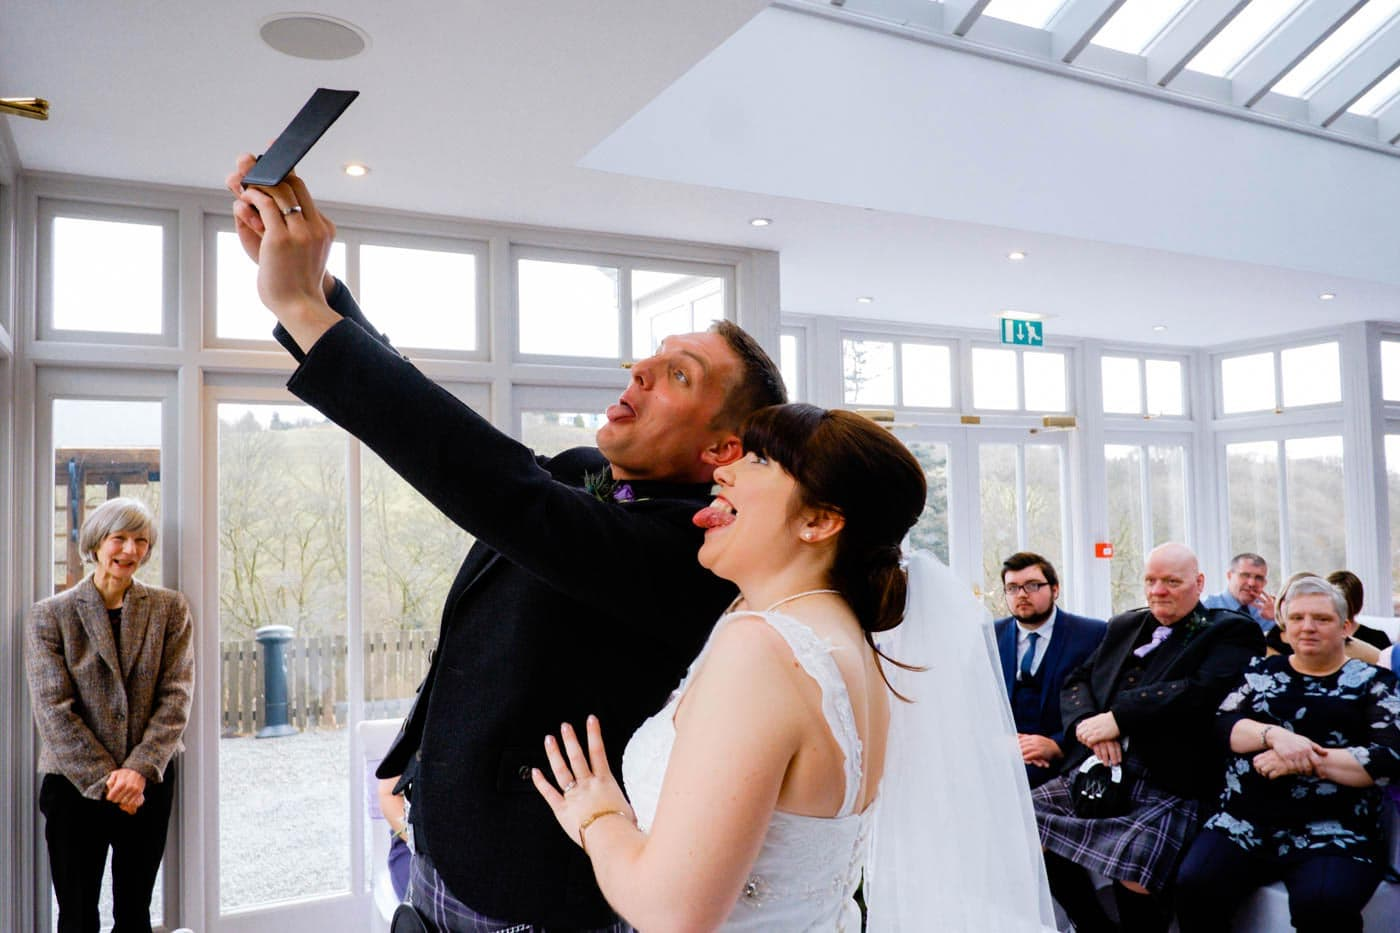 Bride and groom talking selfie after their wedding with their guests in the background